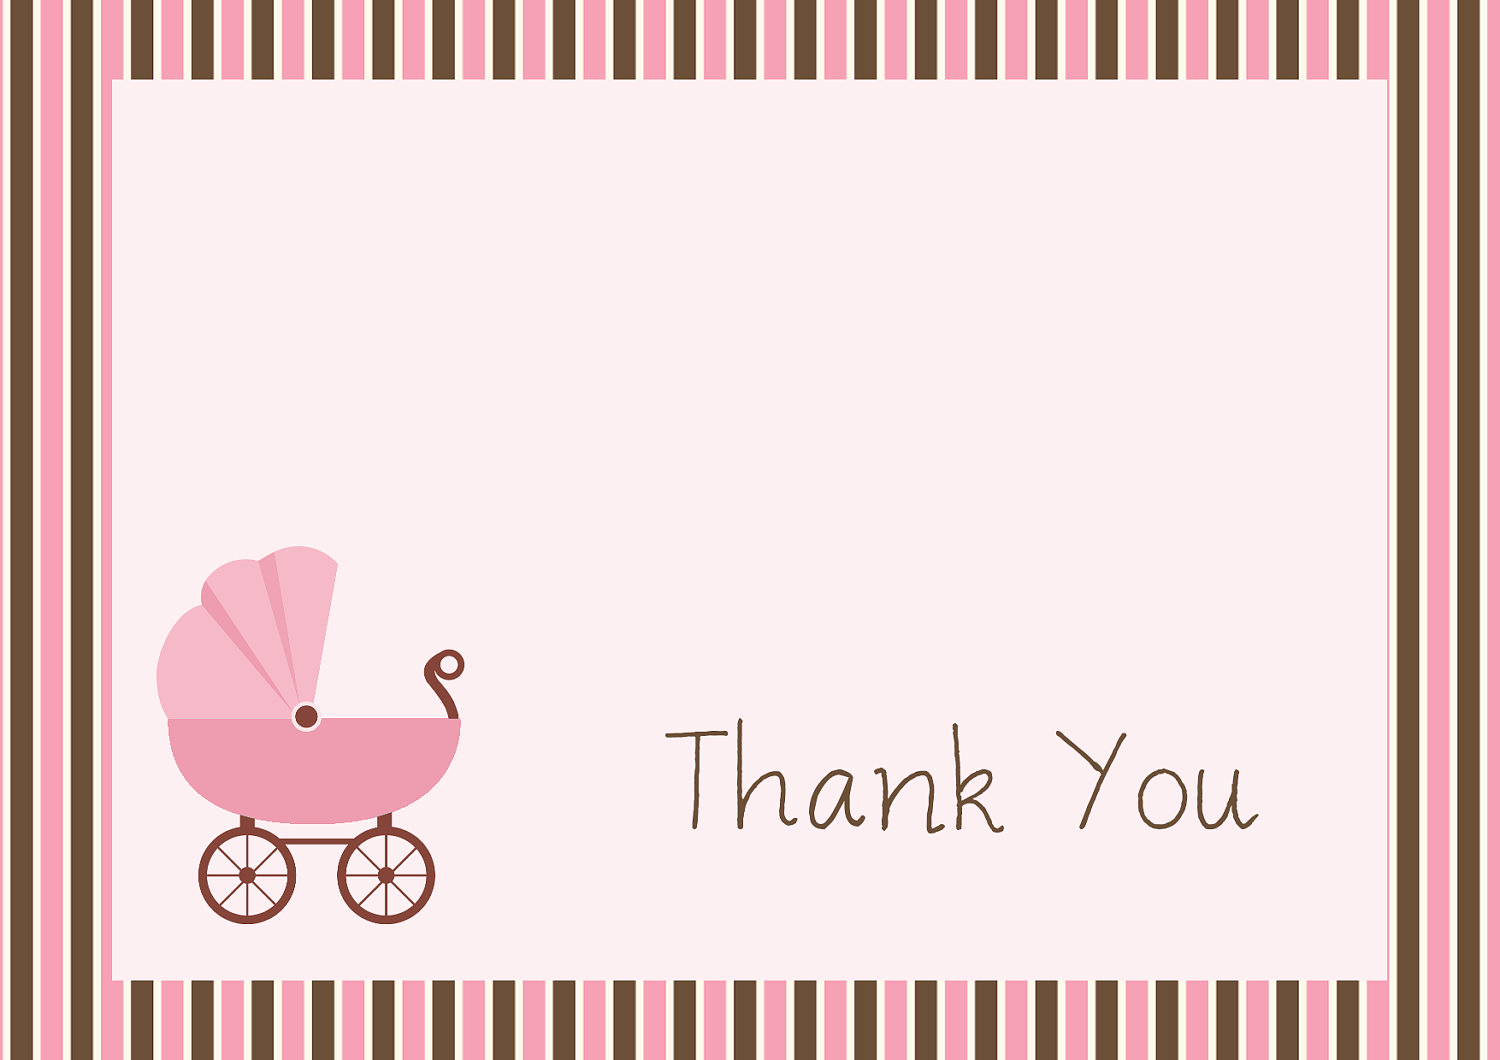 Free Printable Baby Shower Card Unique 34 Printable Thank You Cards for All Purposes